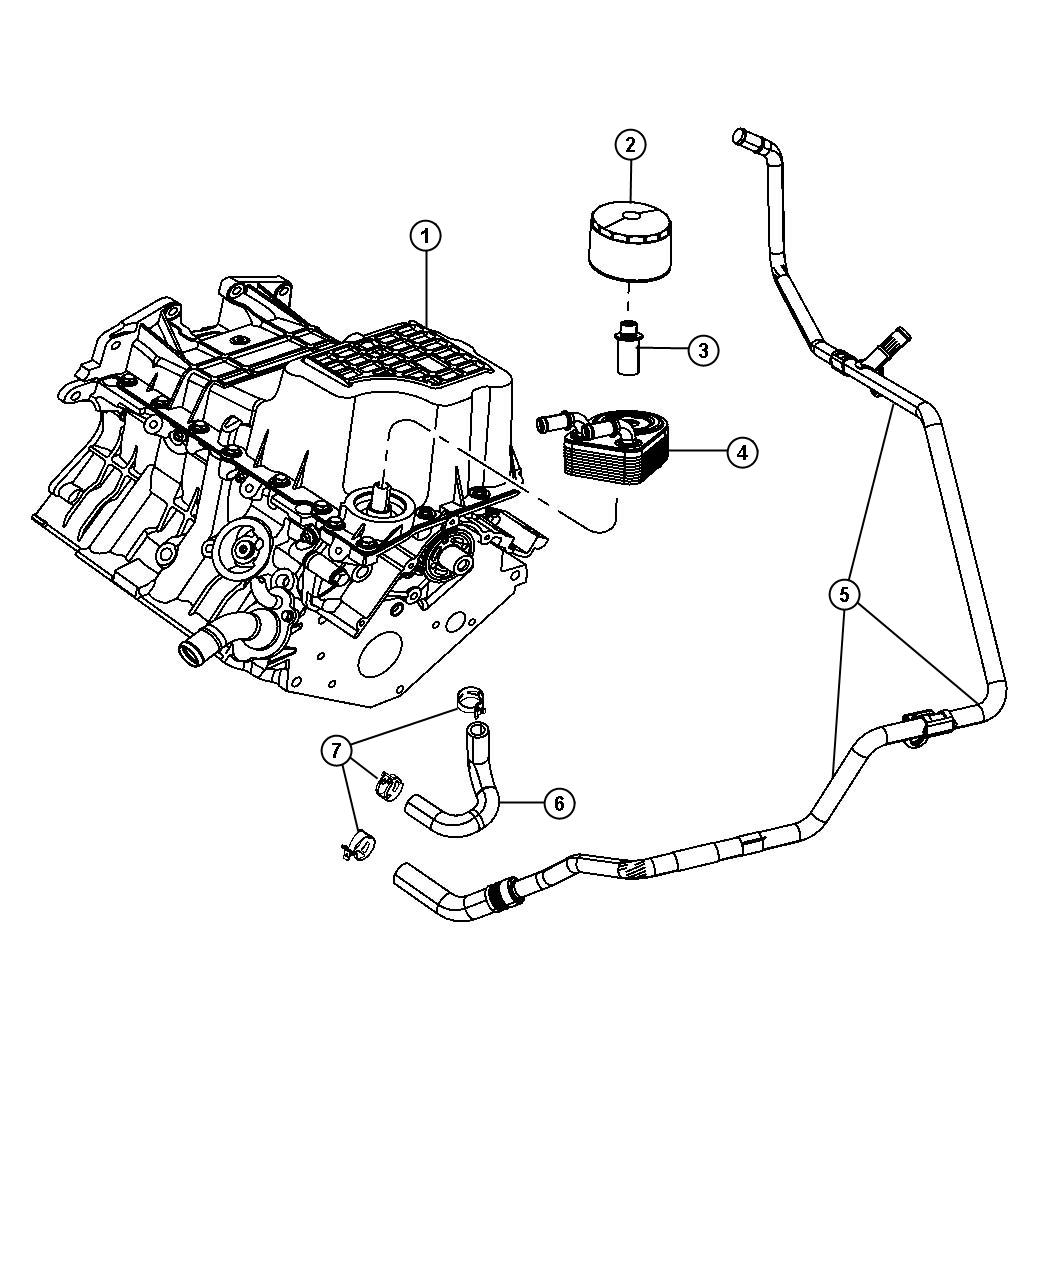 chrysler m wiring diagram discover your wiring chrysler 300m engine oil filter location chrysler 300 fuse box